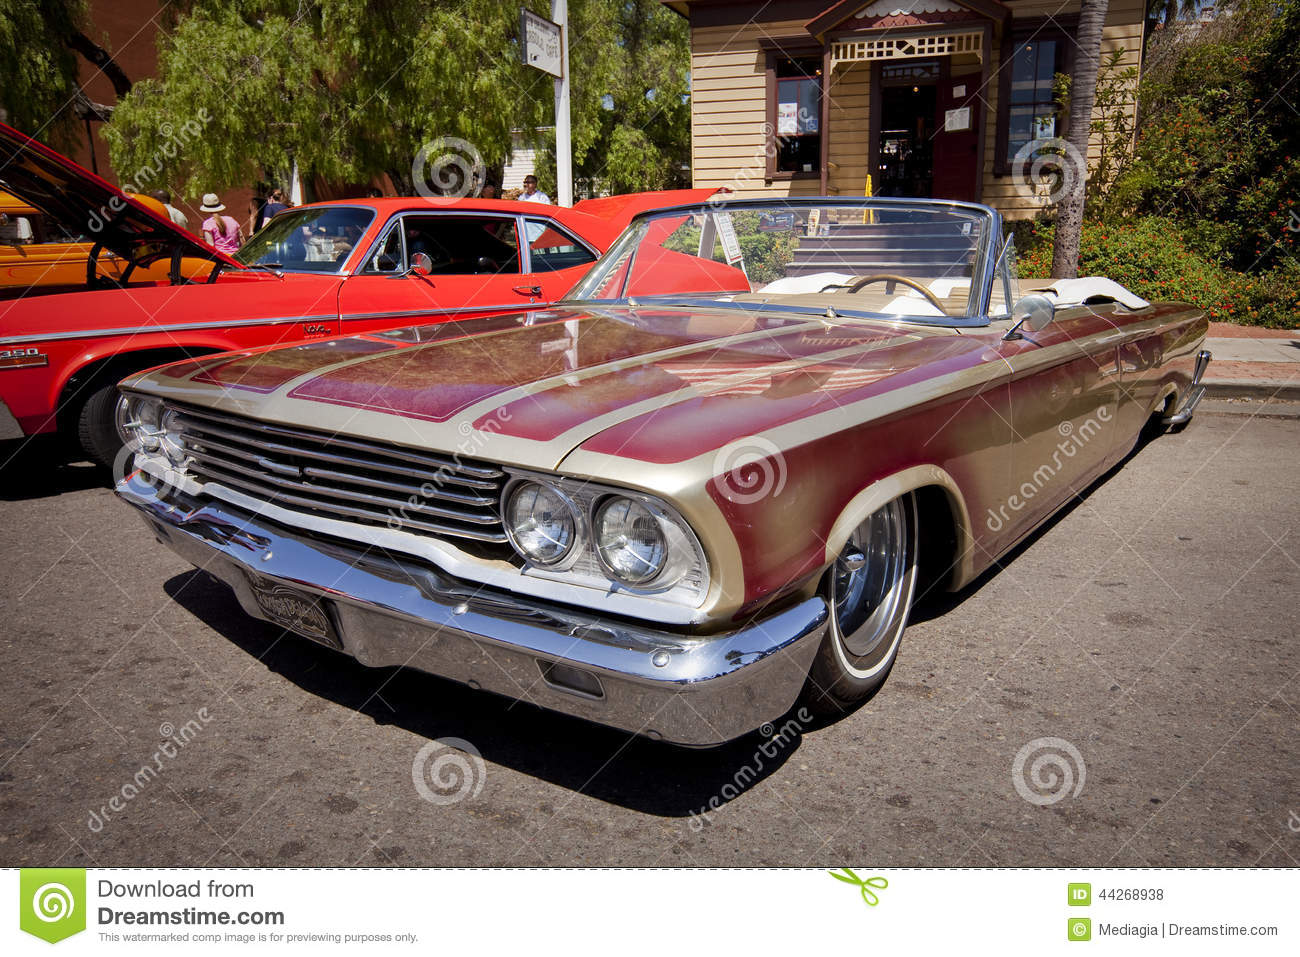 Audio Car Wallpaper Download Ford Galaxie Lowrider Editorial Stock Photo Image Of